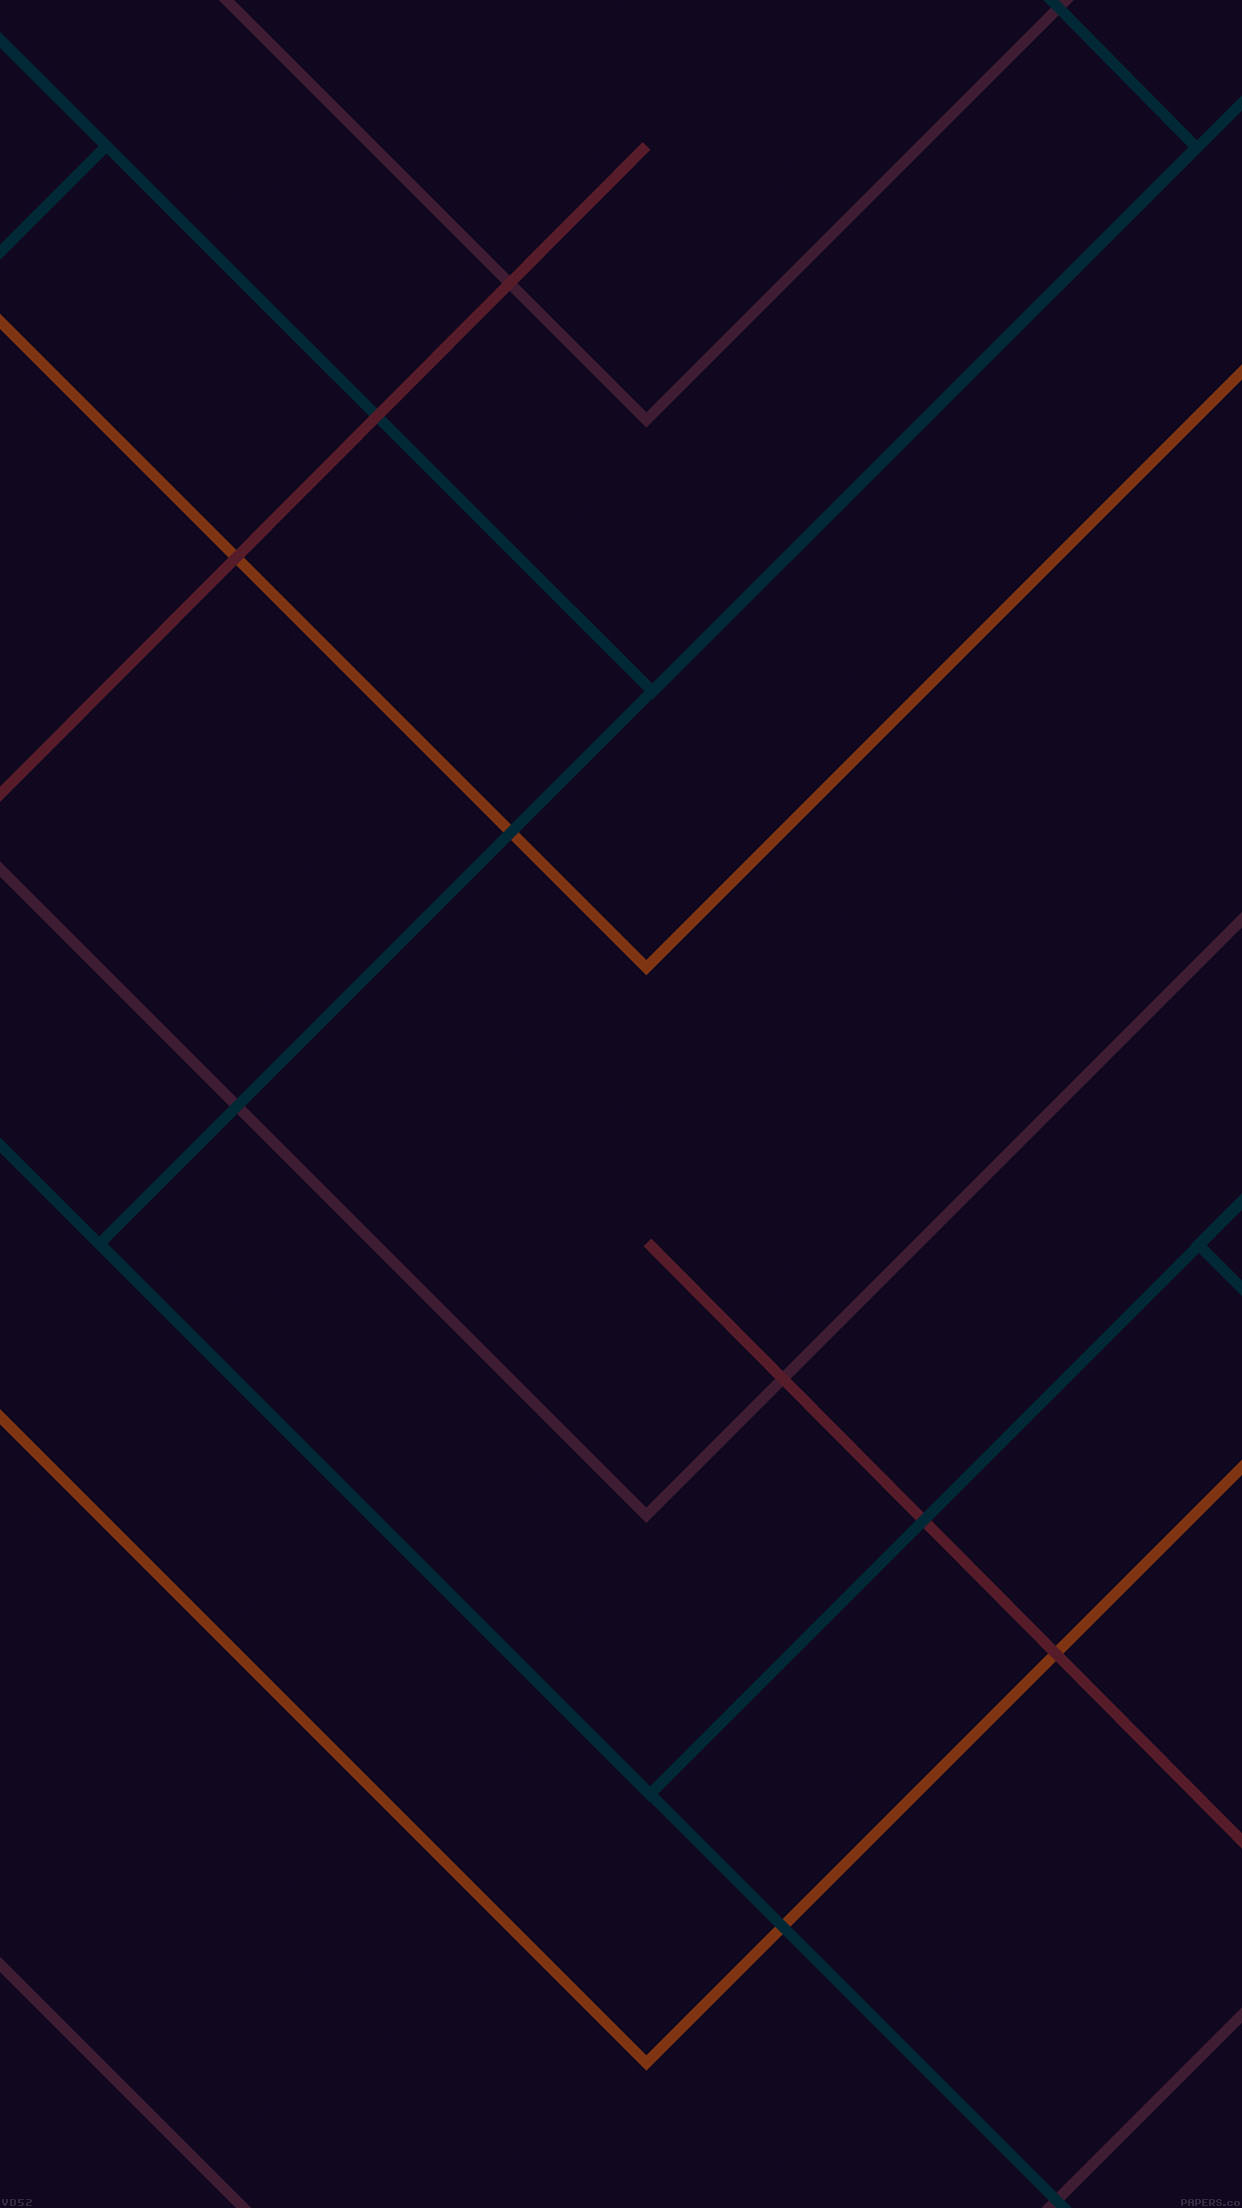 Vd52 Abstract Dark Geometric Line Pattern